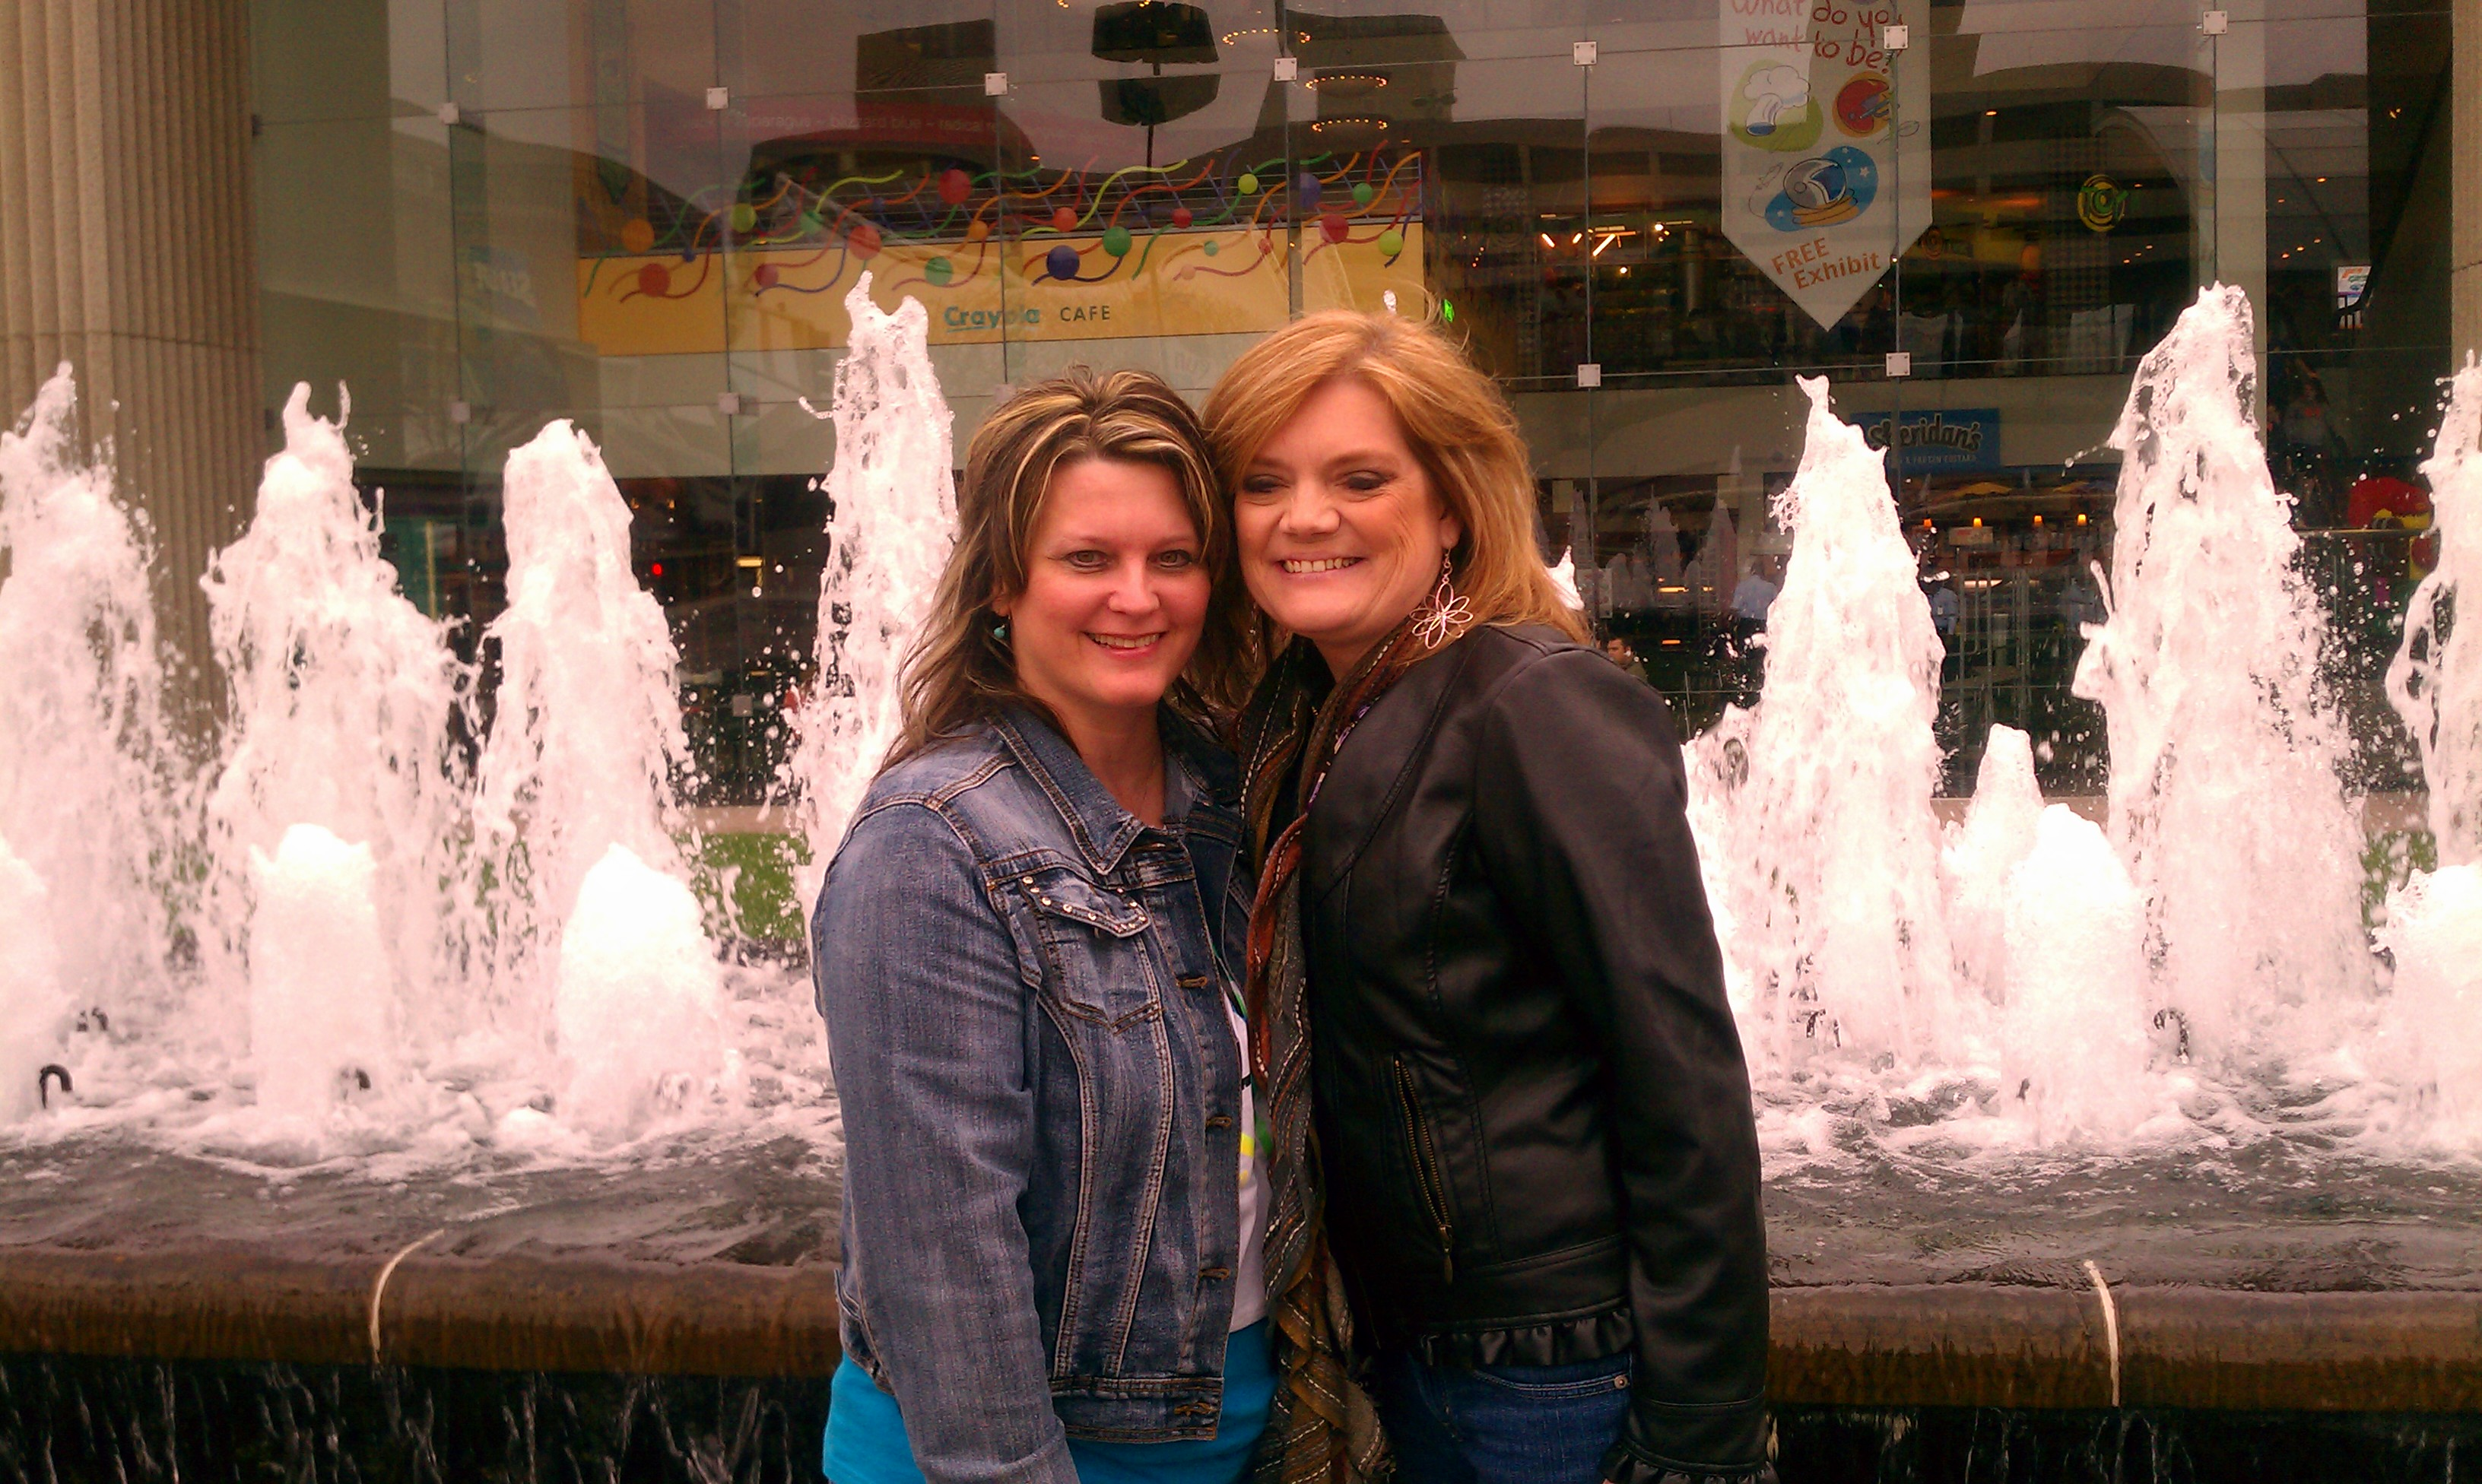 Me and my precious friend Shelley Valasek, at the fountains by Crowne Center, Kansas City, MO